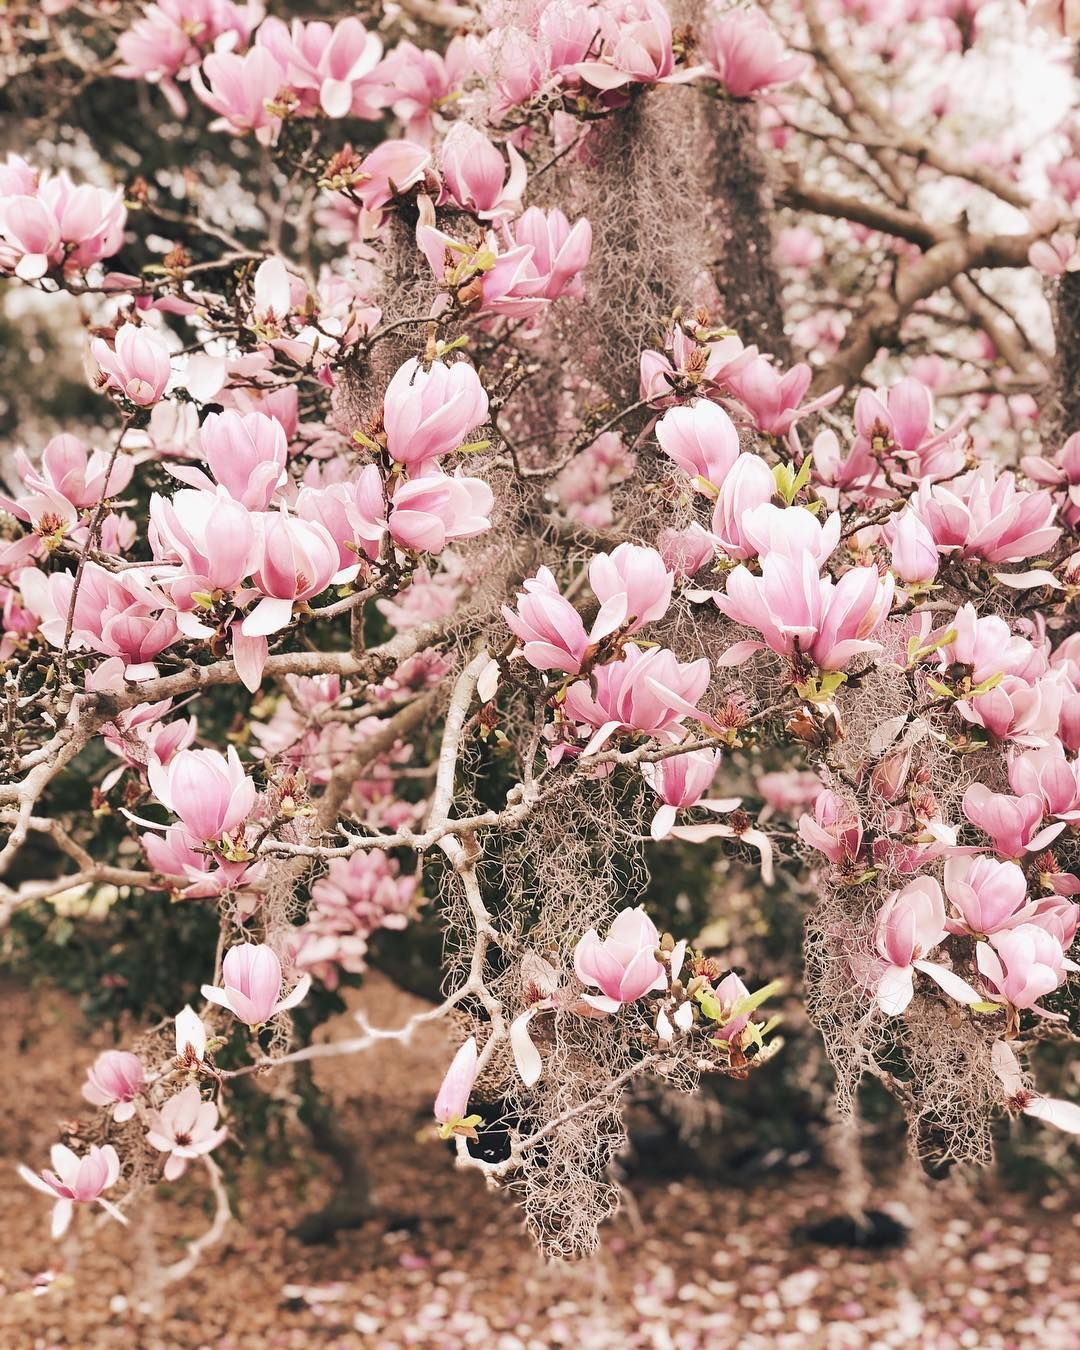 I Love When The Japanese Magnolia Bloom This Time Of Year We Have A Huge Tree Just Outside Of Our Breakfast Nook Wi Japanese Magnolia Love Flowers Love Garden